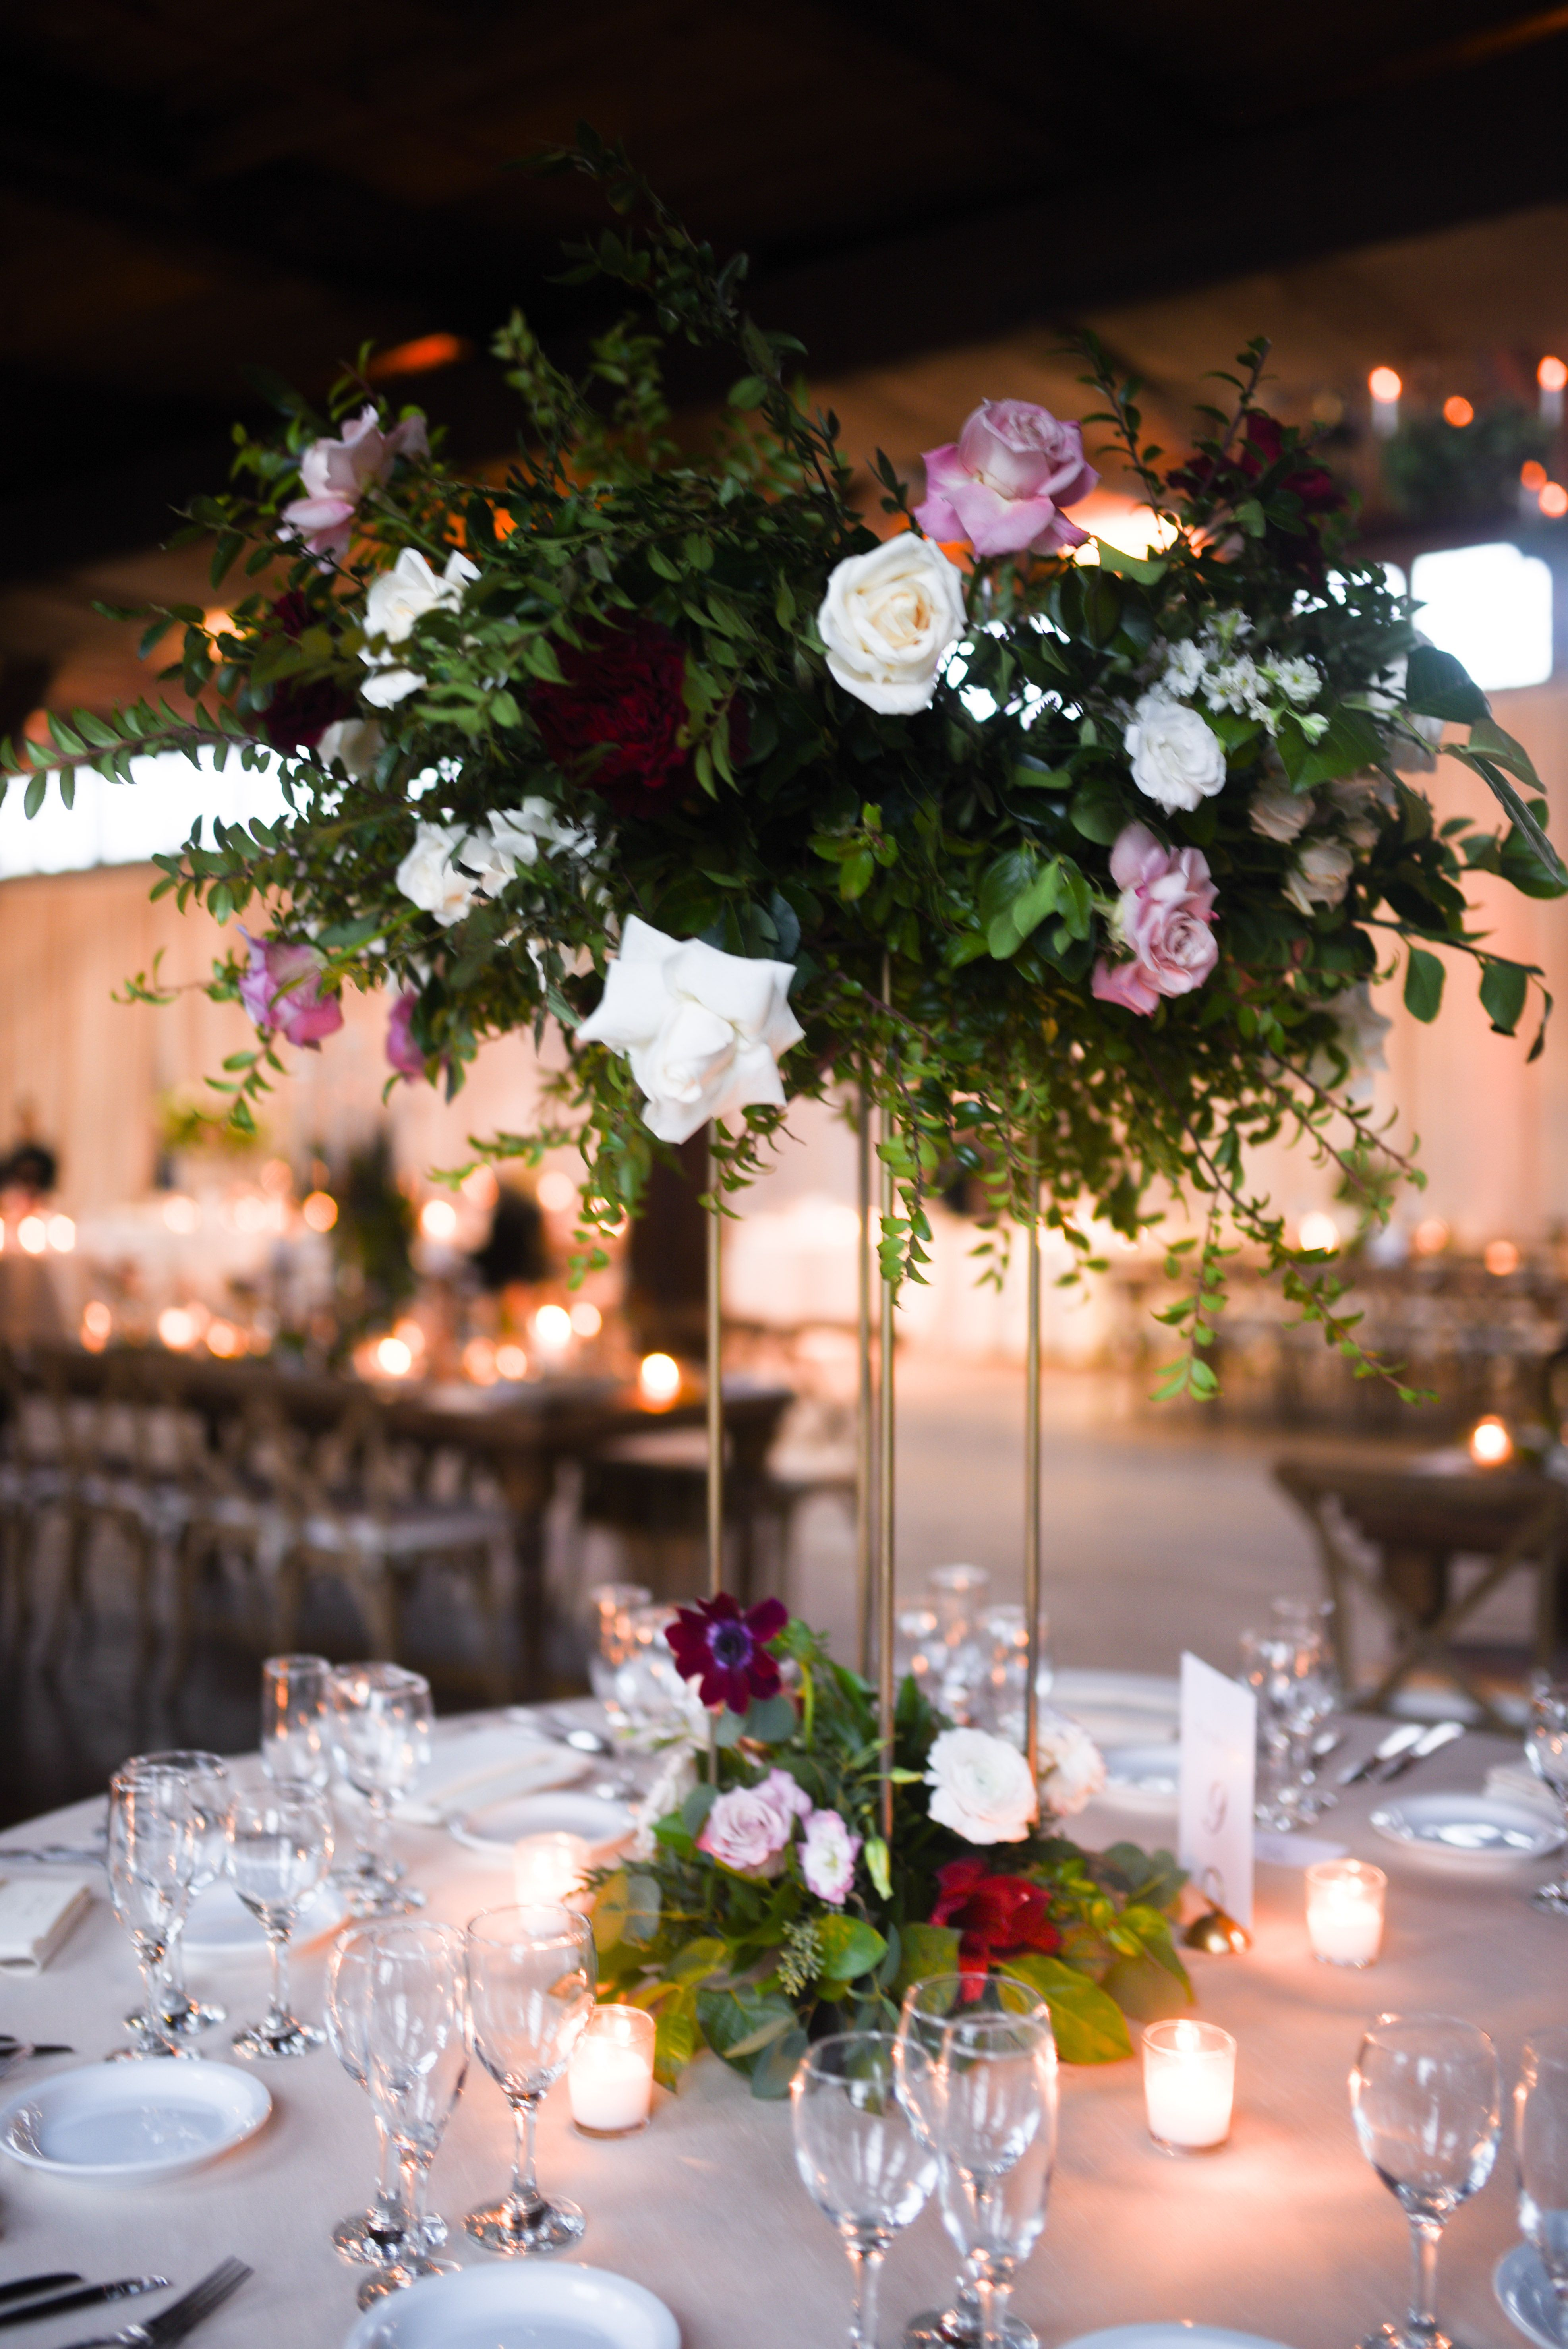 Candelabras Lanterns Pillar Candles And Lots Of Gorgeous Blooms Tall Centerpieces Chalice Centerpieces Hangi Tall Centerpieces Pillar Candles Centerpieces